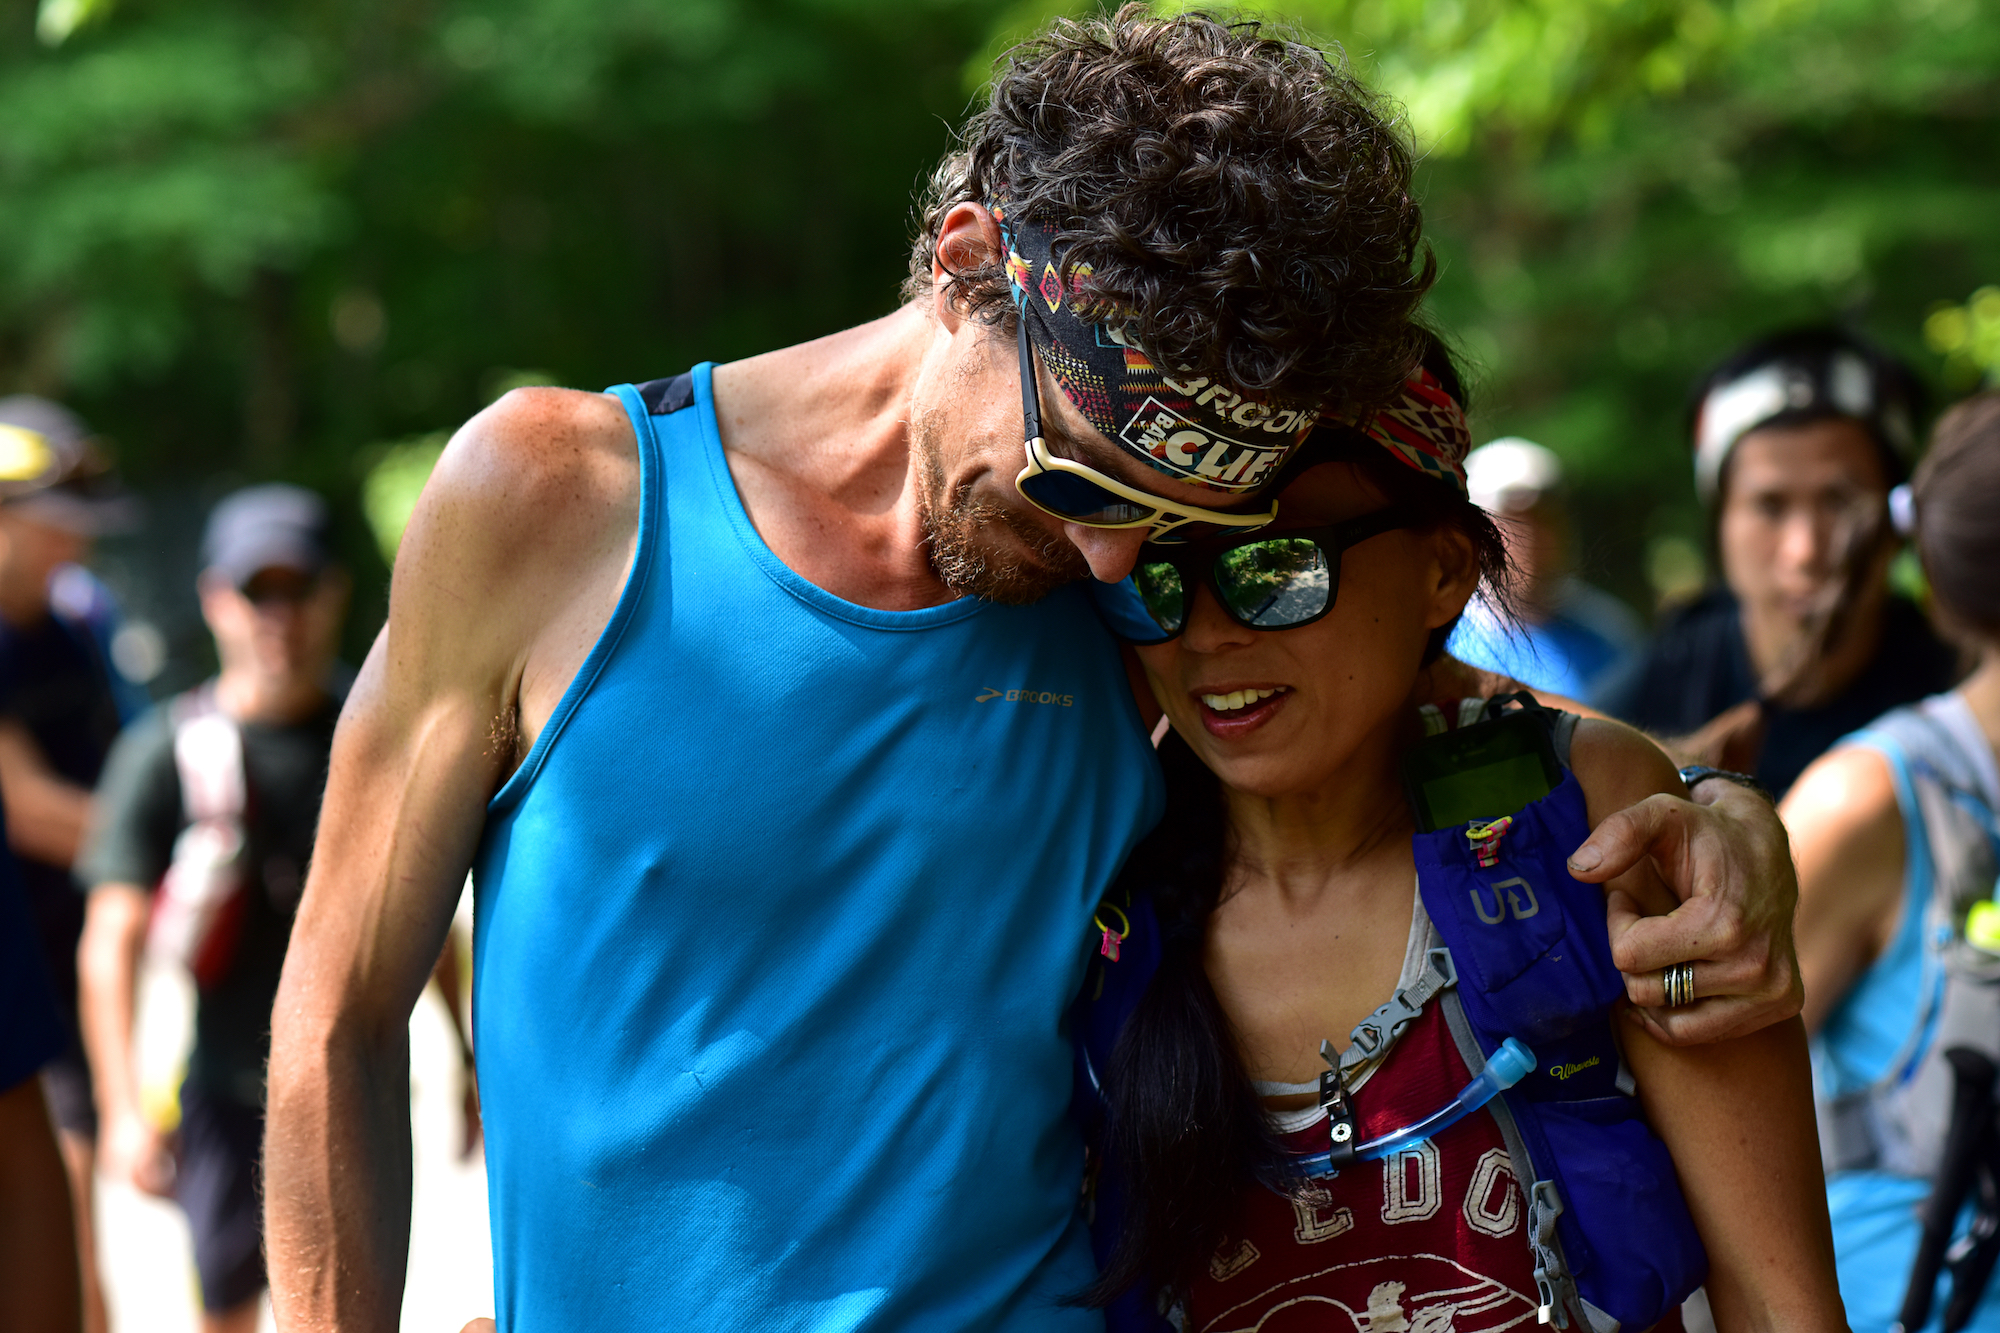 Scott and Jenny Jurek